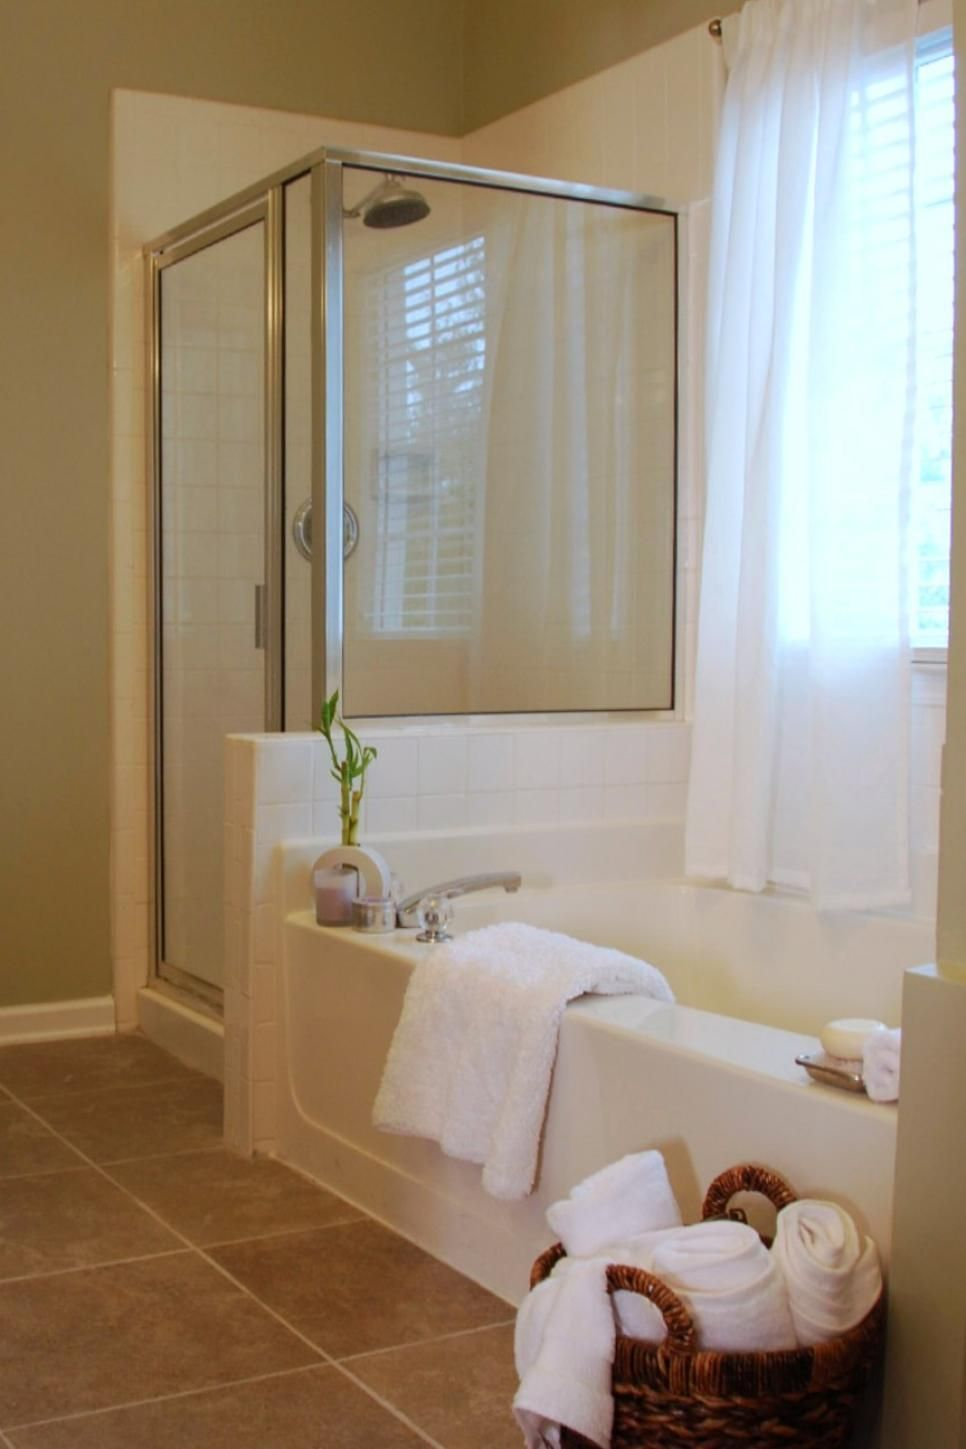 Room by room staging strategies shower doors towels and - Cleaning bathroom glass shower doors ...